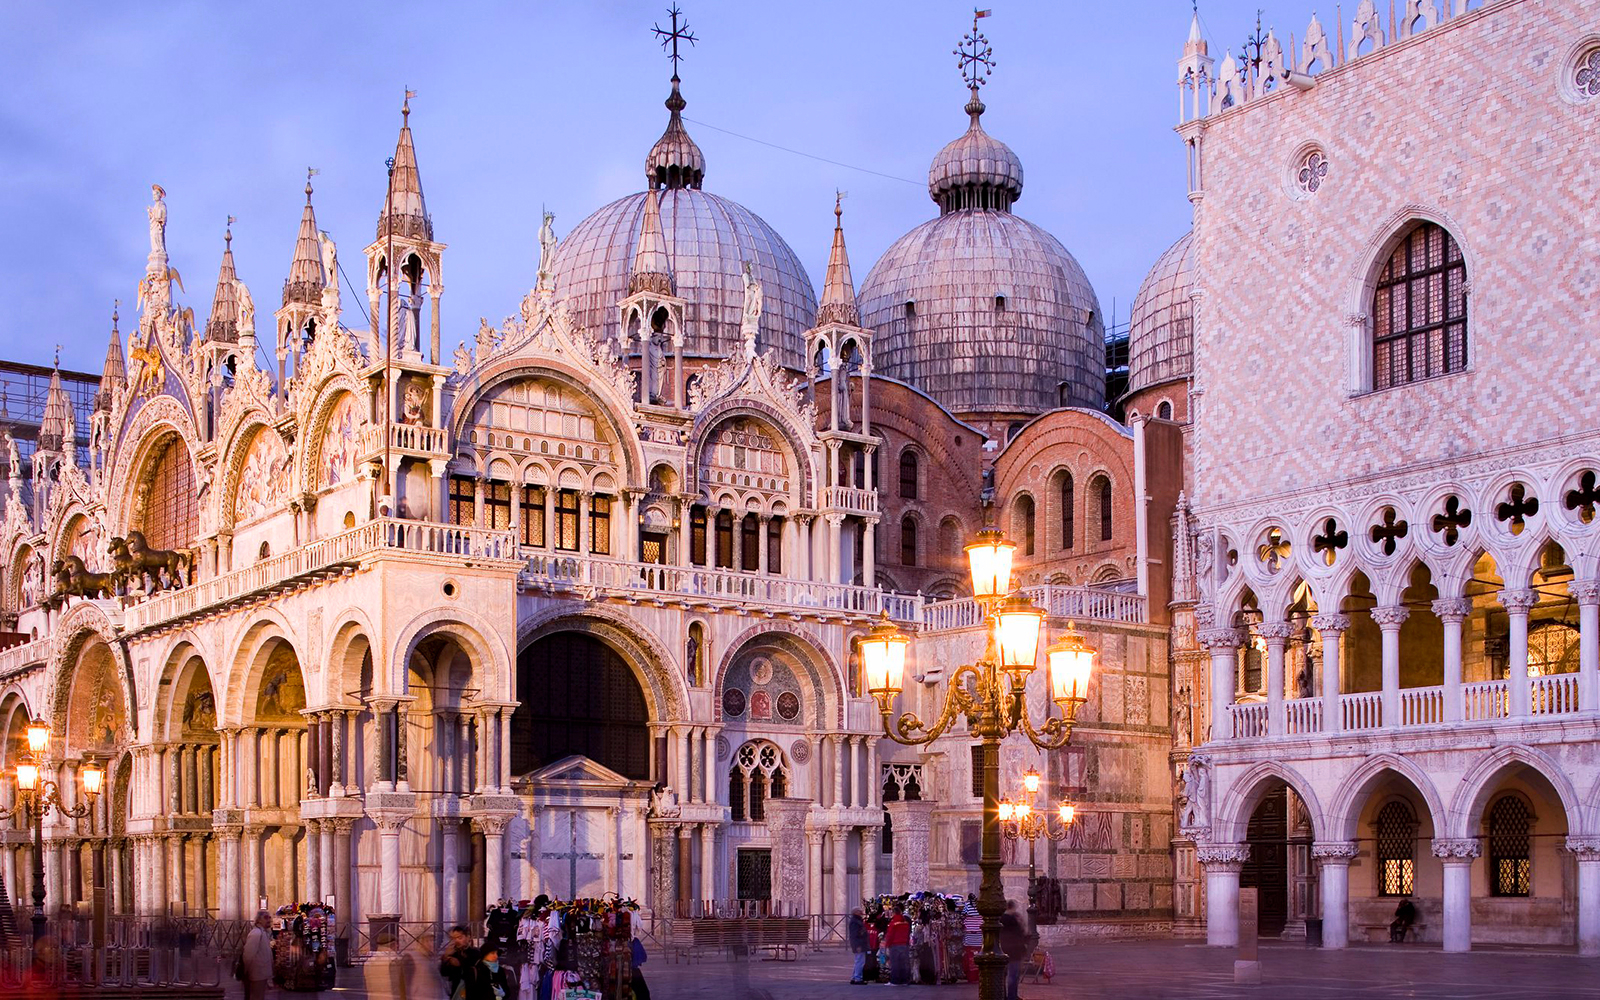 9f4c71f3 c8e4 4ea4 b0b7 487d3c3fafeb 8585 venice st marks basilica and doge palace guided tour skip the line 01